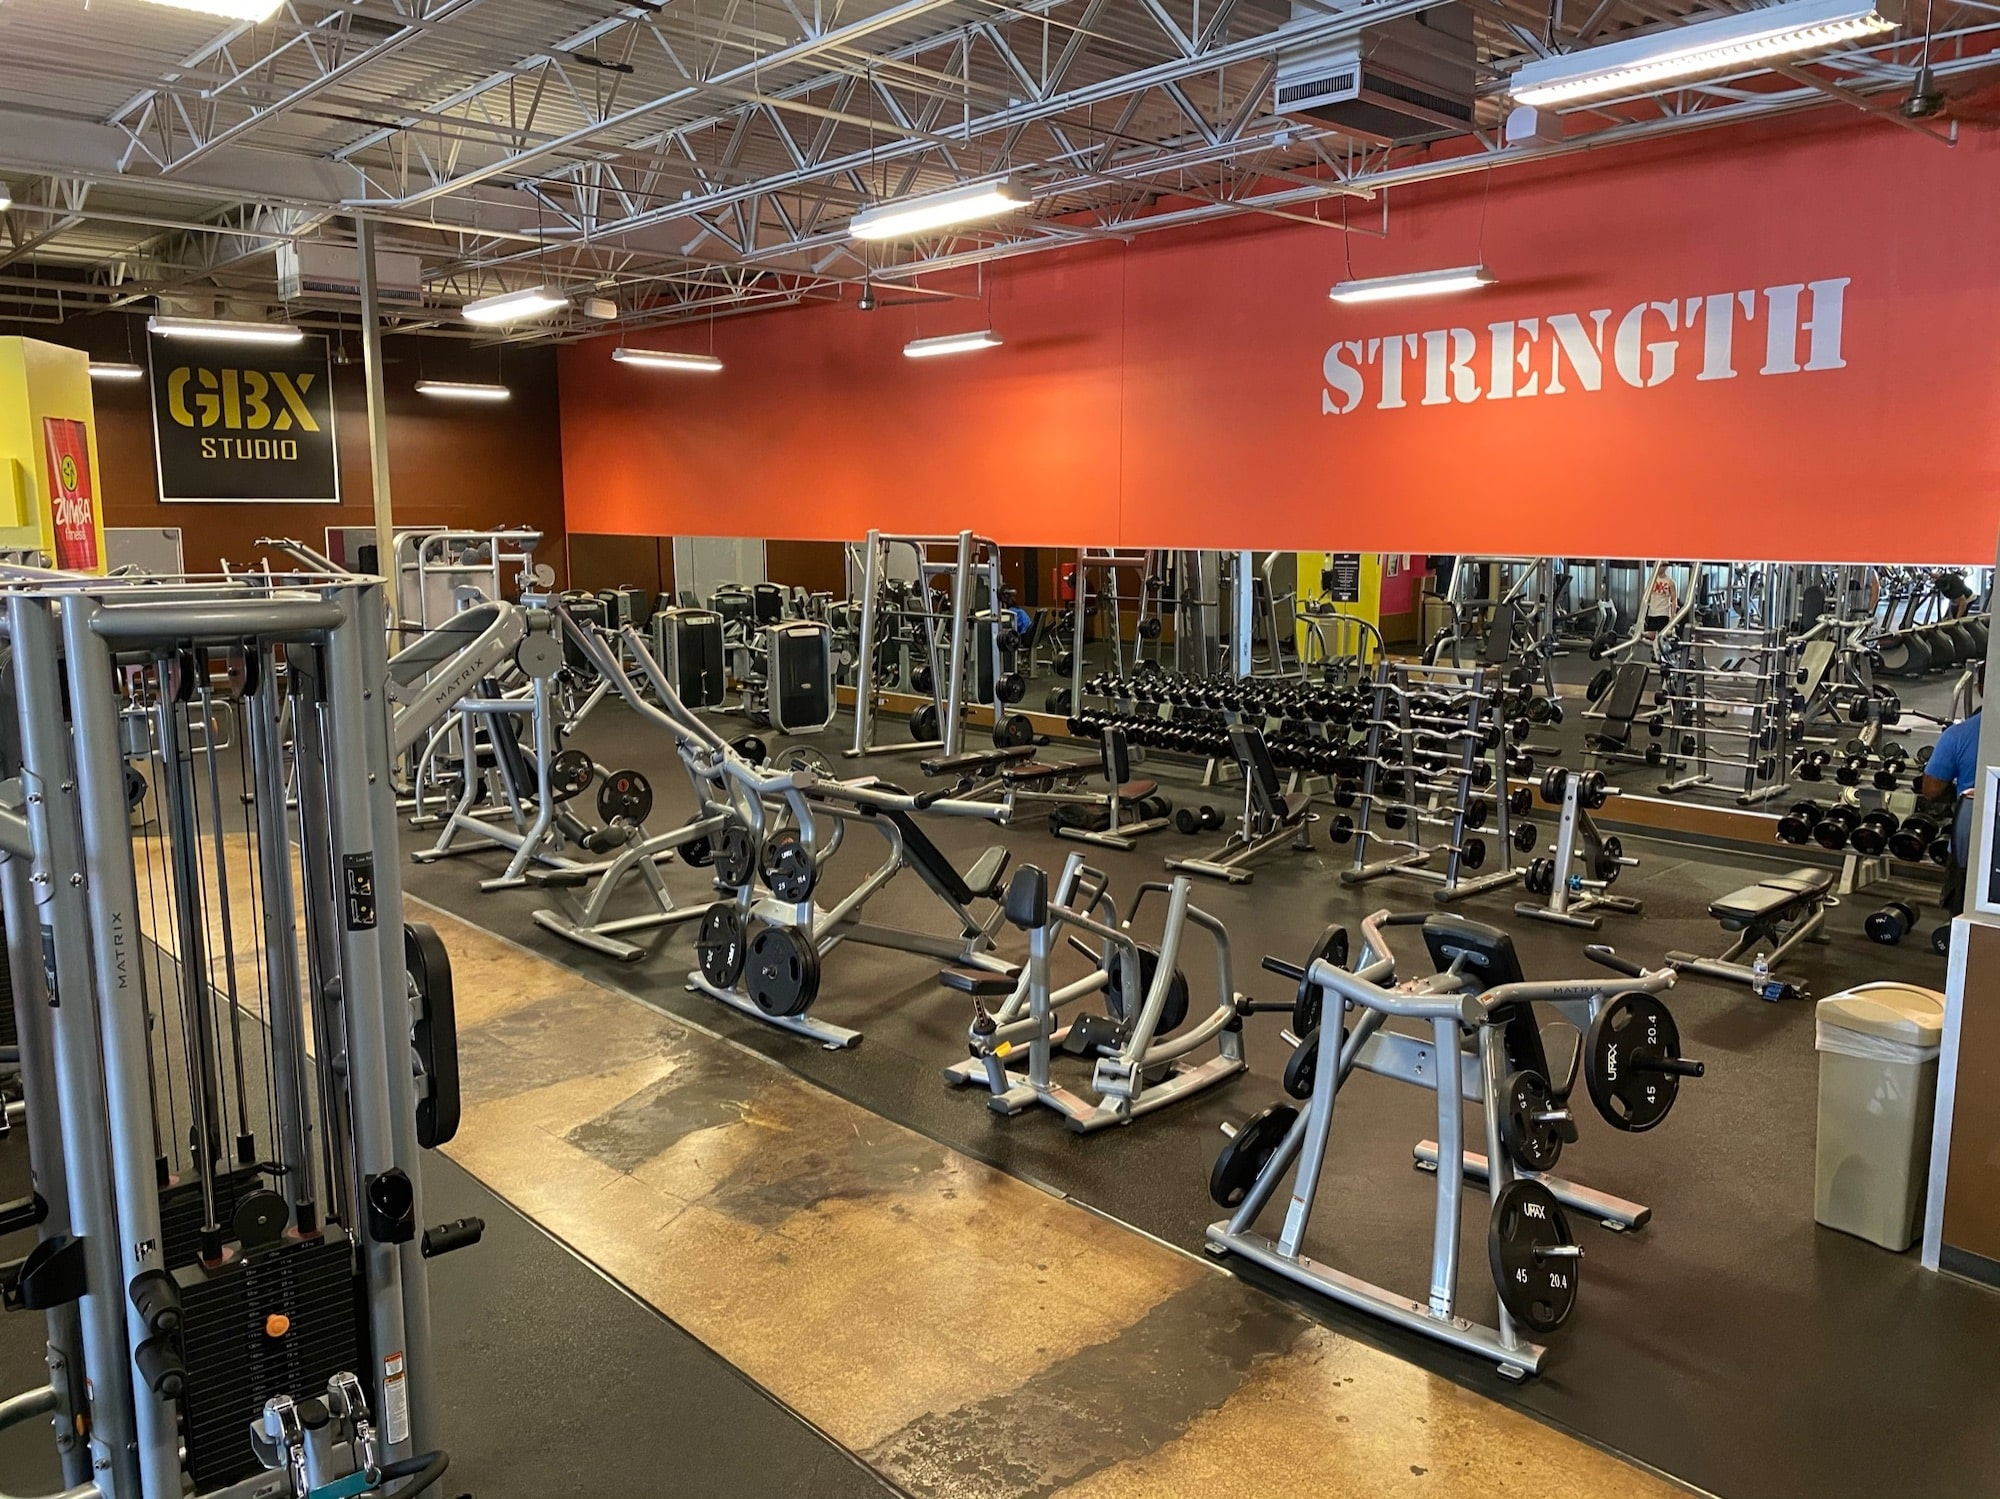 Always a weight never a wait at GYMBOX Fitness in Texarkana